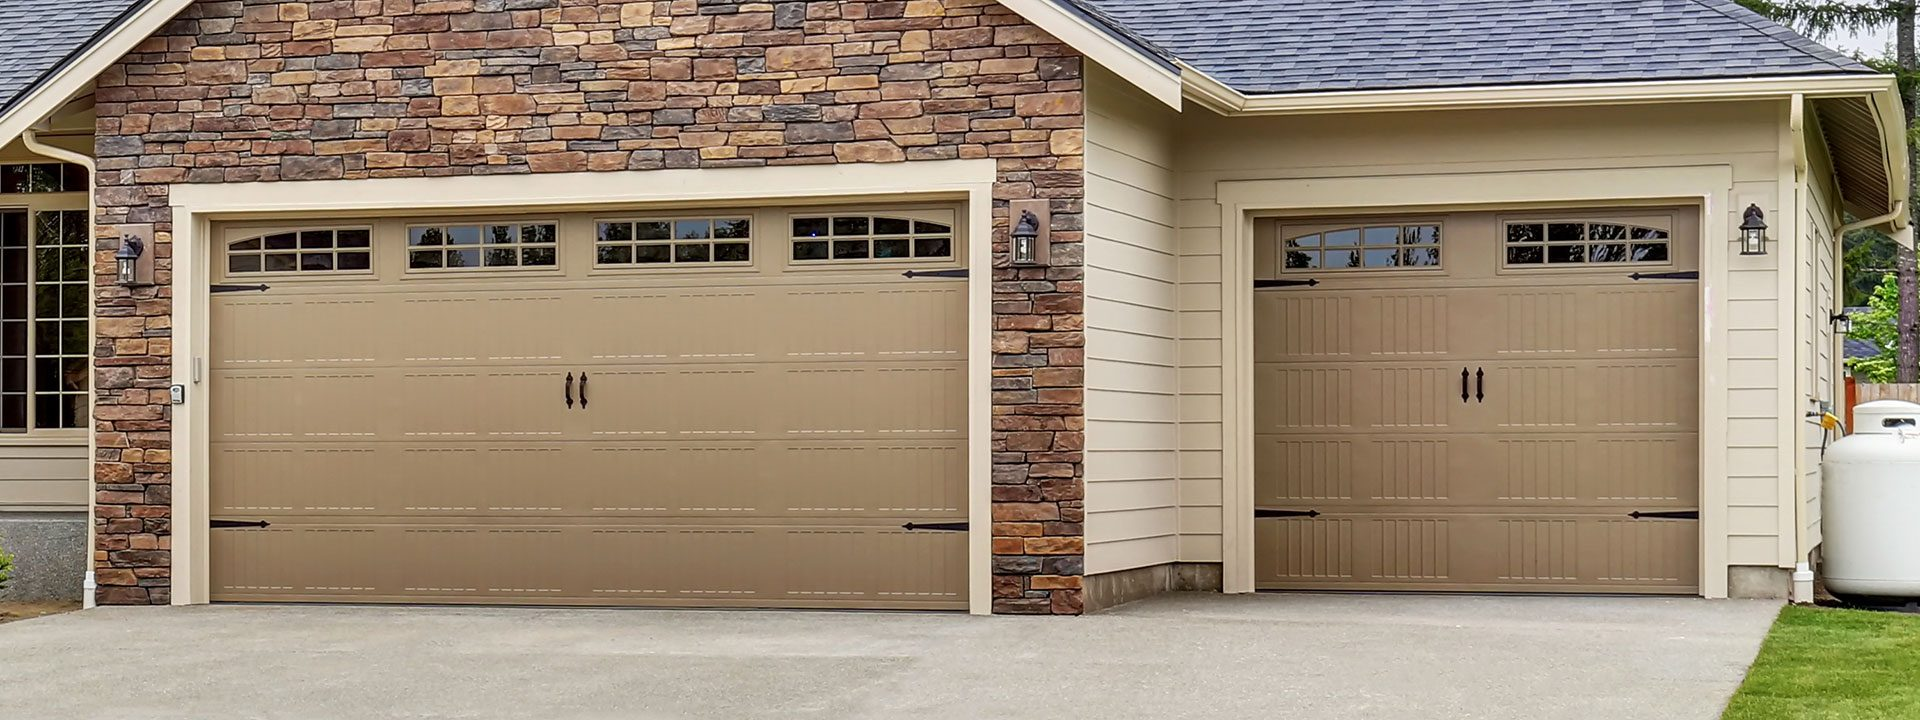 Canton ga garage door repairs woodstock garage springs installation let us know your thoughts review us on rubansaba